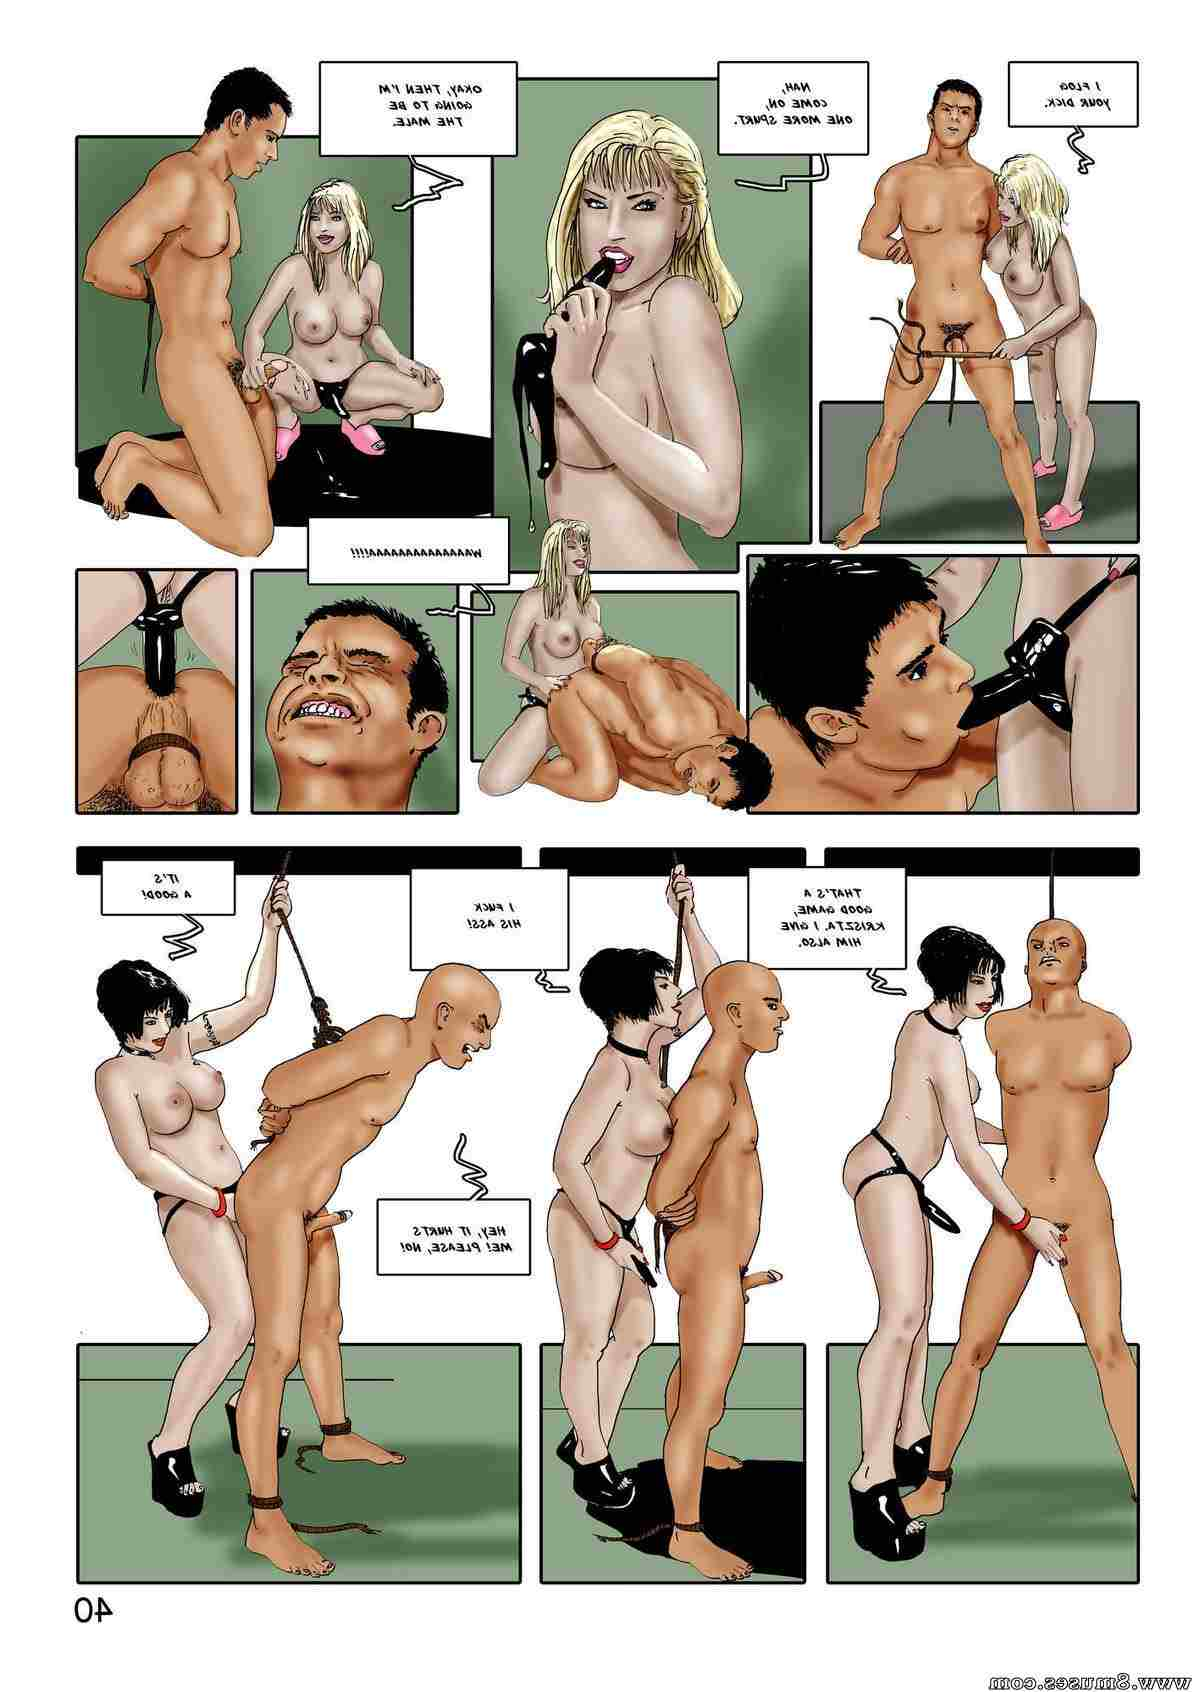 AllPornComics_com-Comics/Danube-Girls Danube_Girls__8muses_-_Sex_and_Porn_Comics_40.jpg